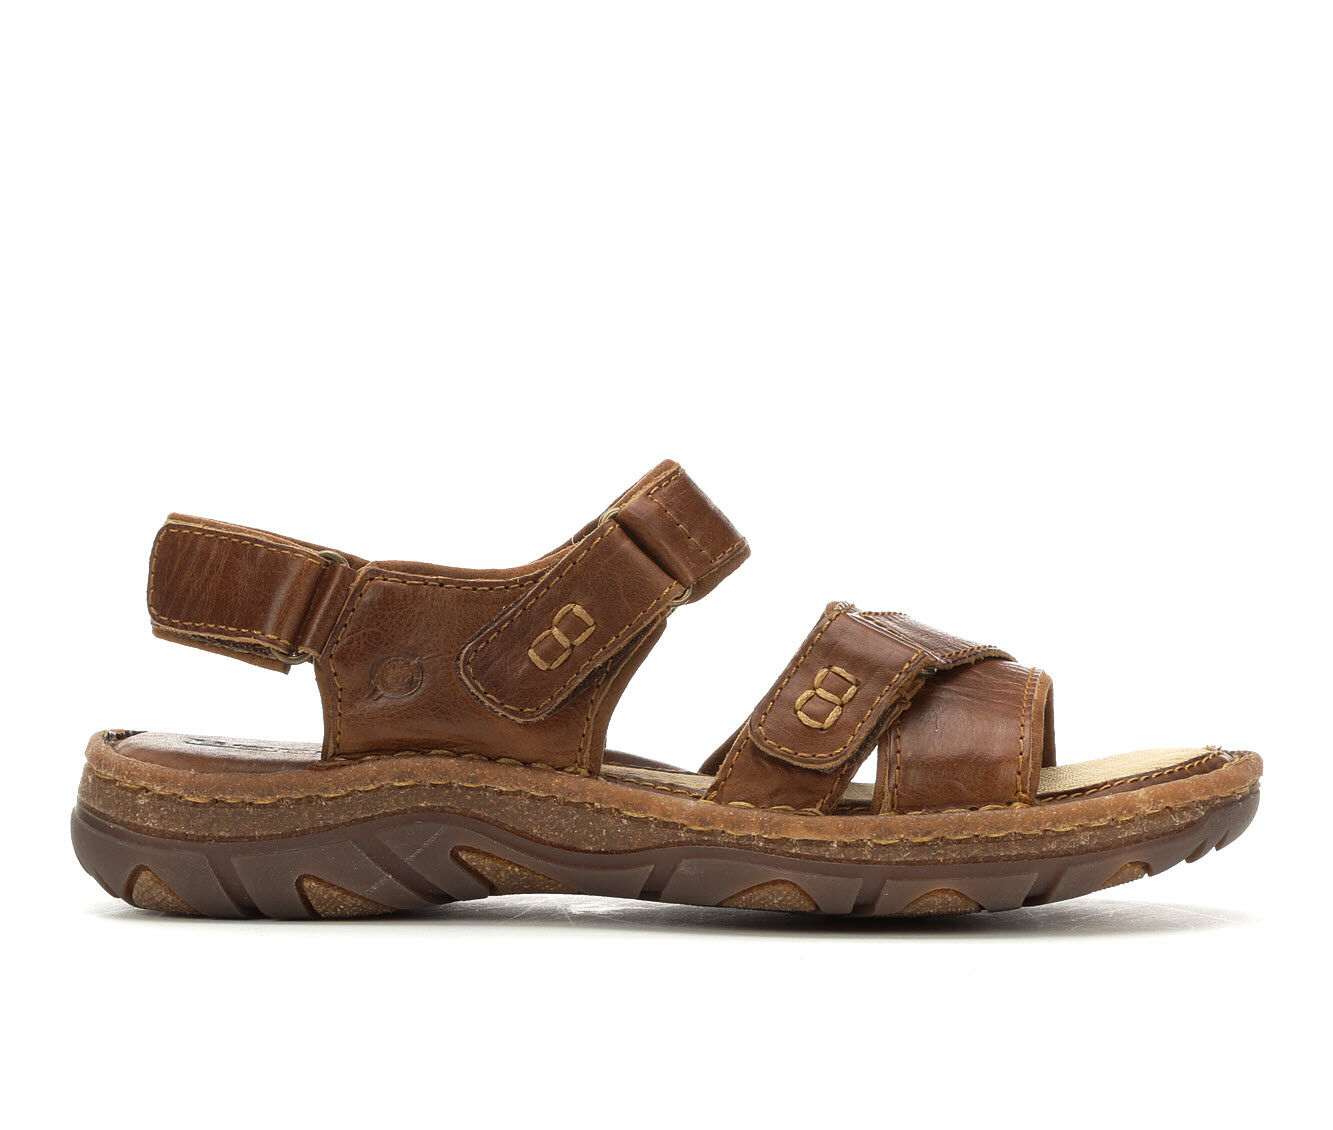 Men's Born Custer Hiking Sandals Brown